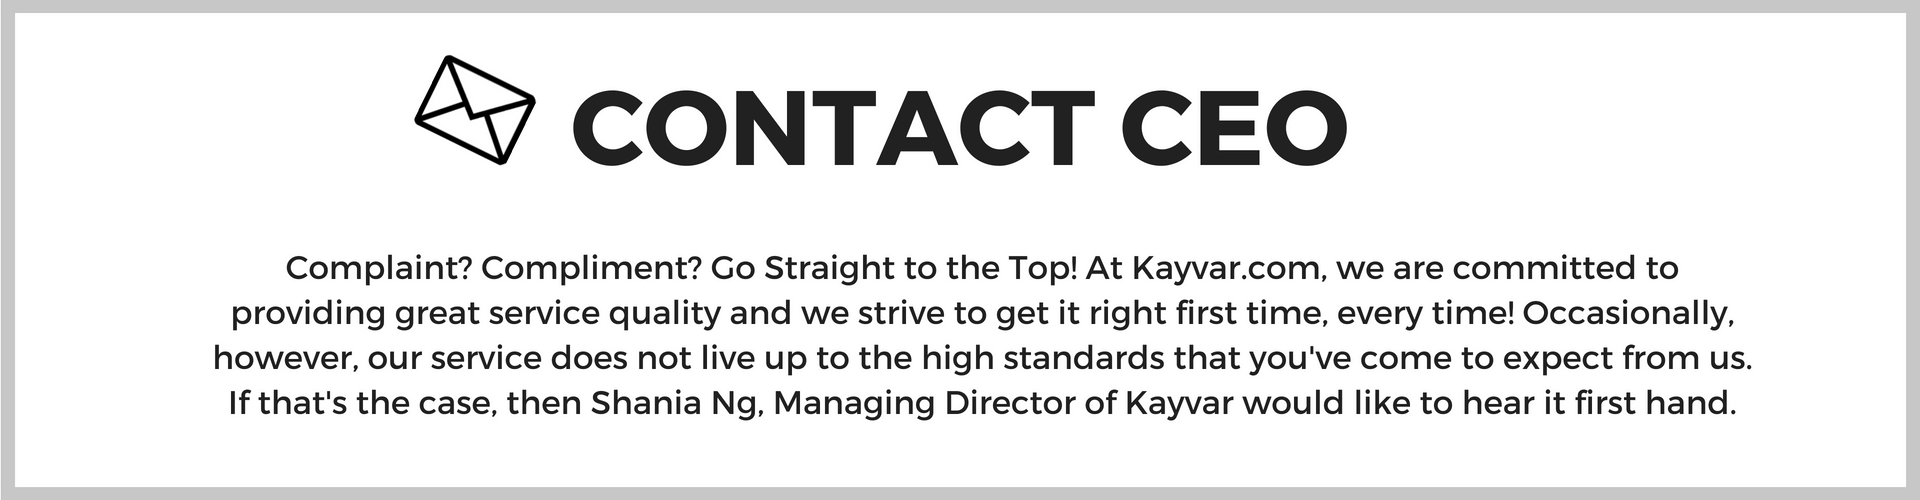 kayvar-promise-contact-ceo-straight-to-the-top